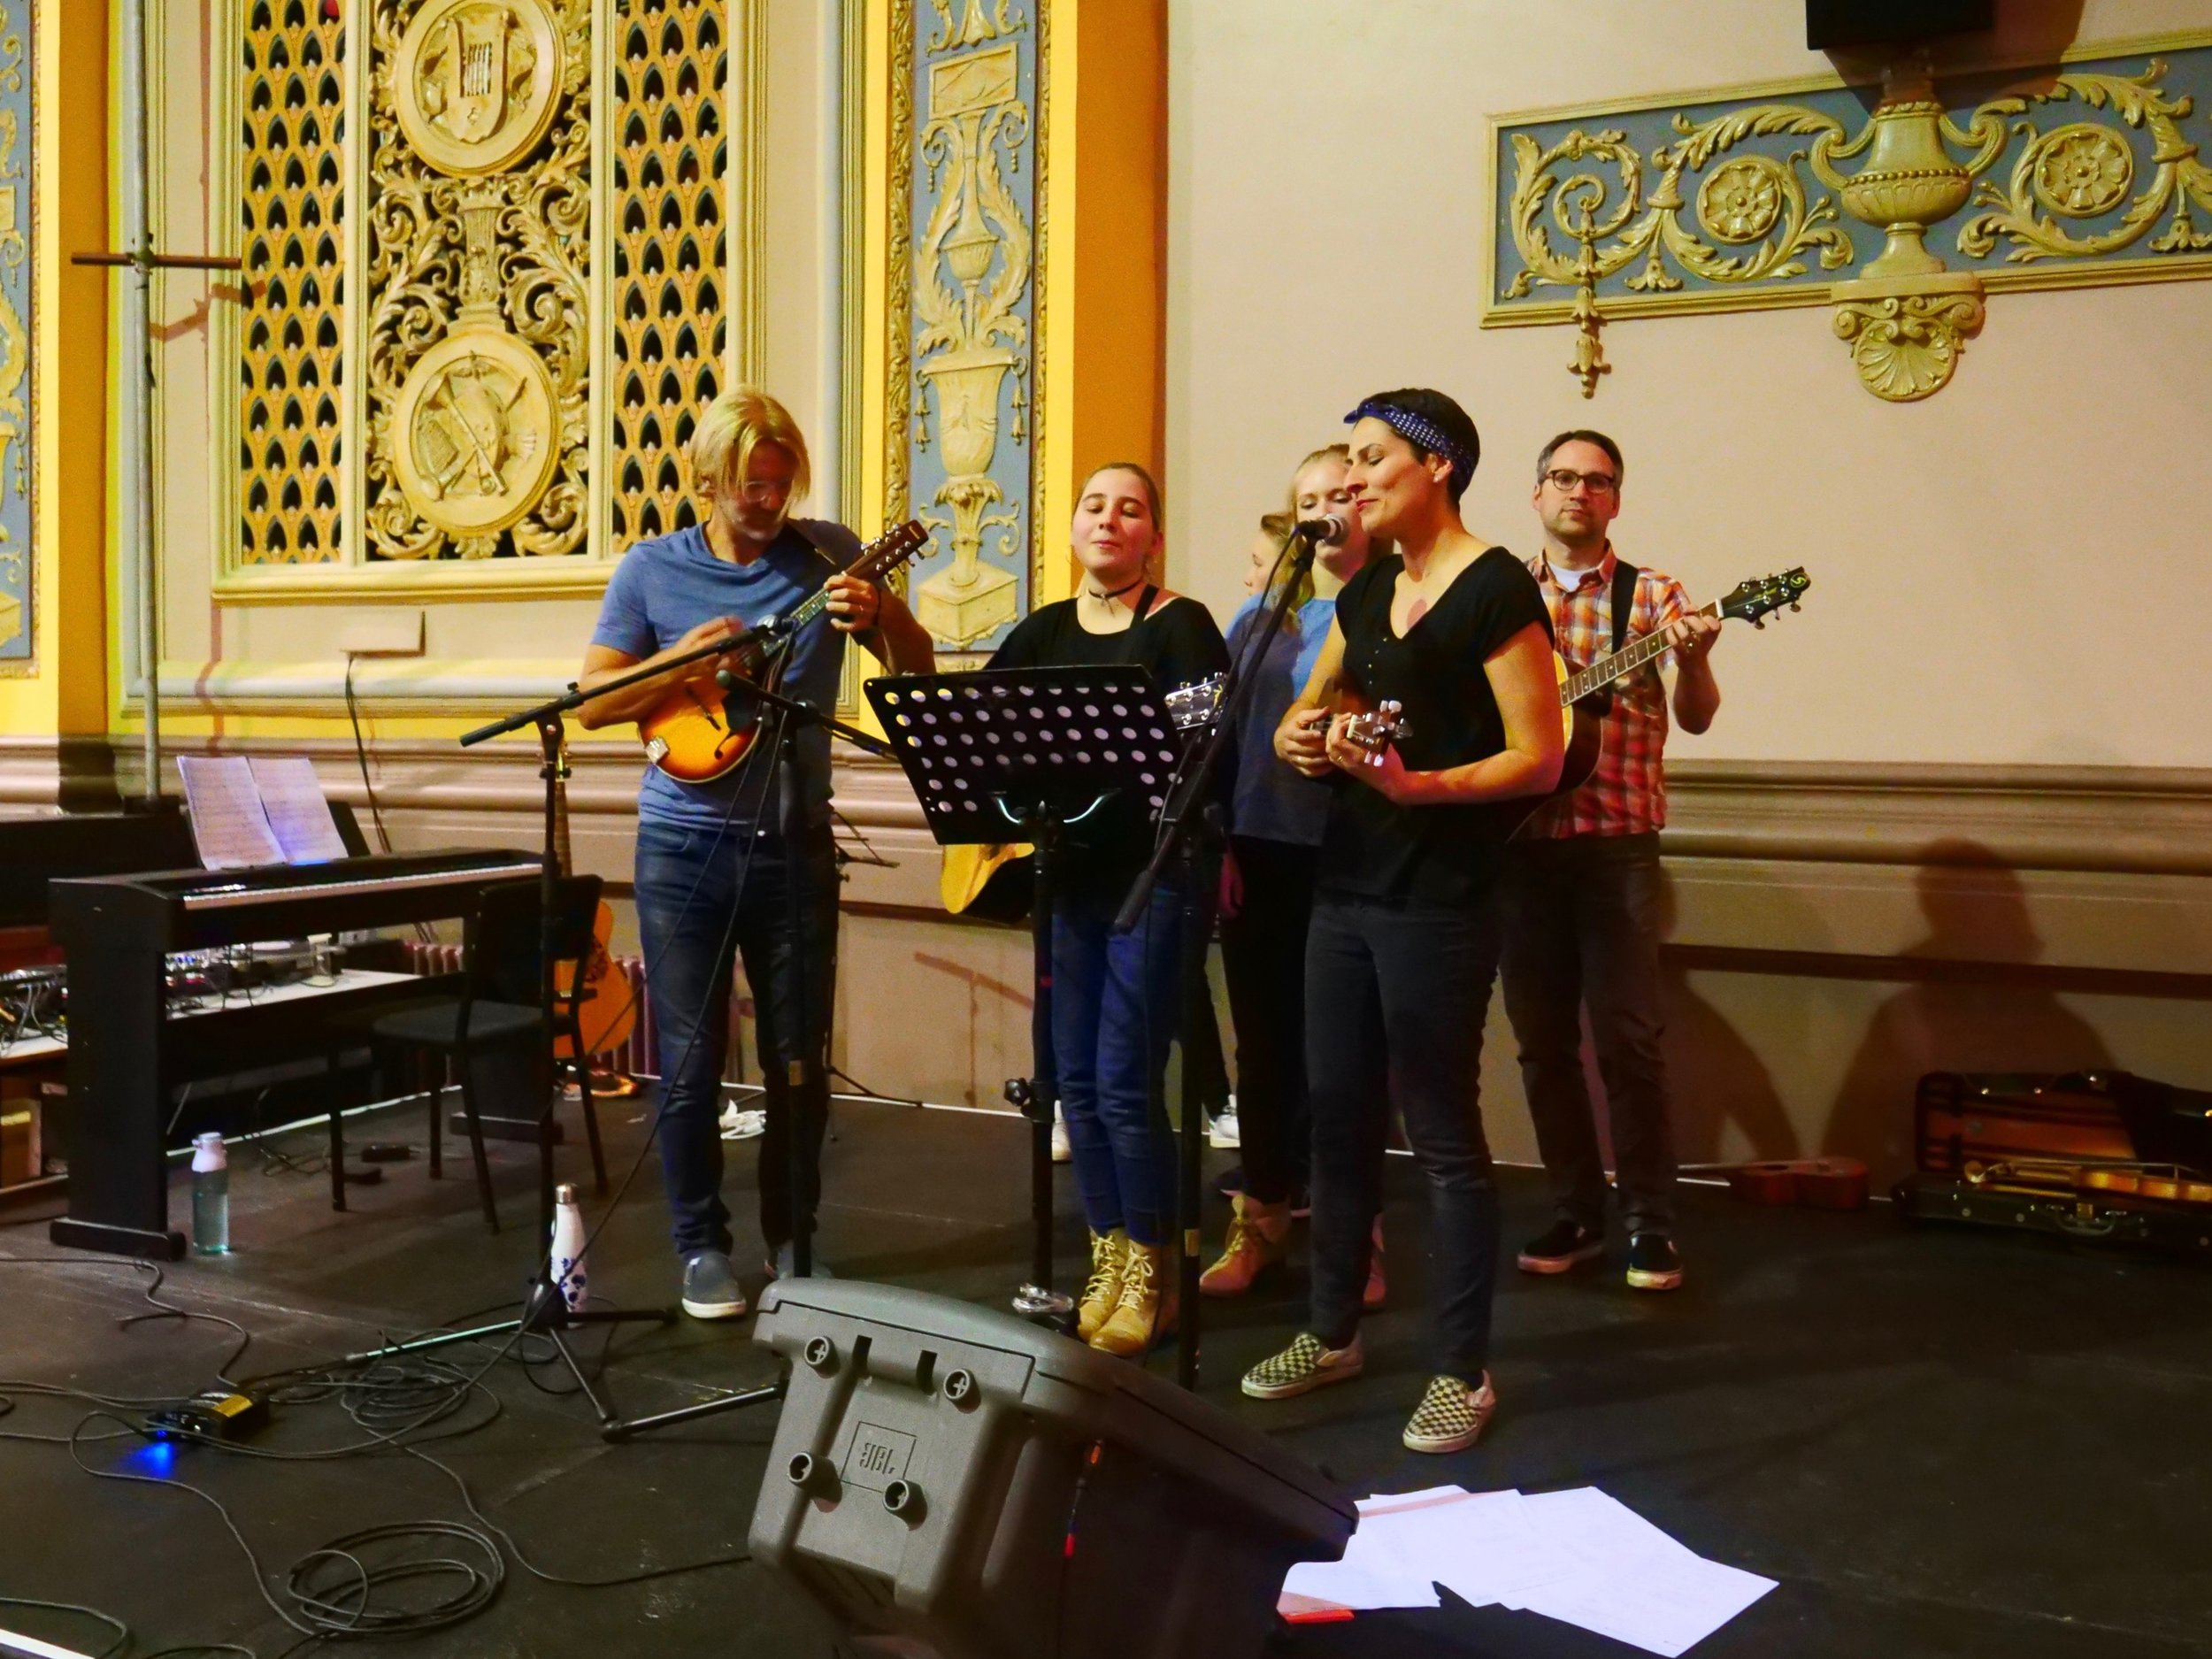 Playing at the fundraiser book sale event for the Regent Theatre in downtown Dunedin.